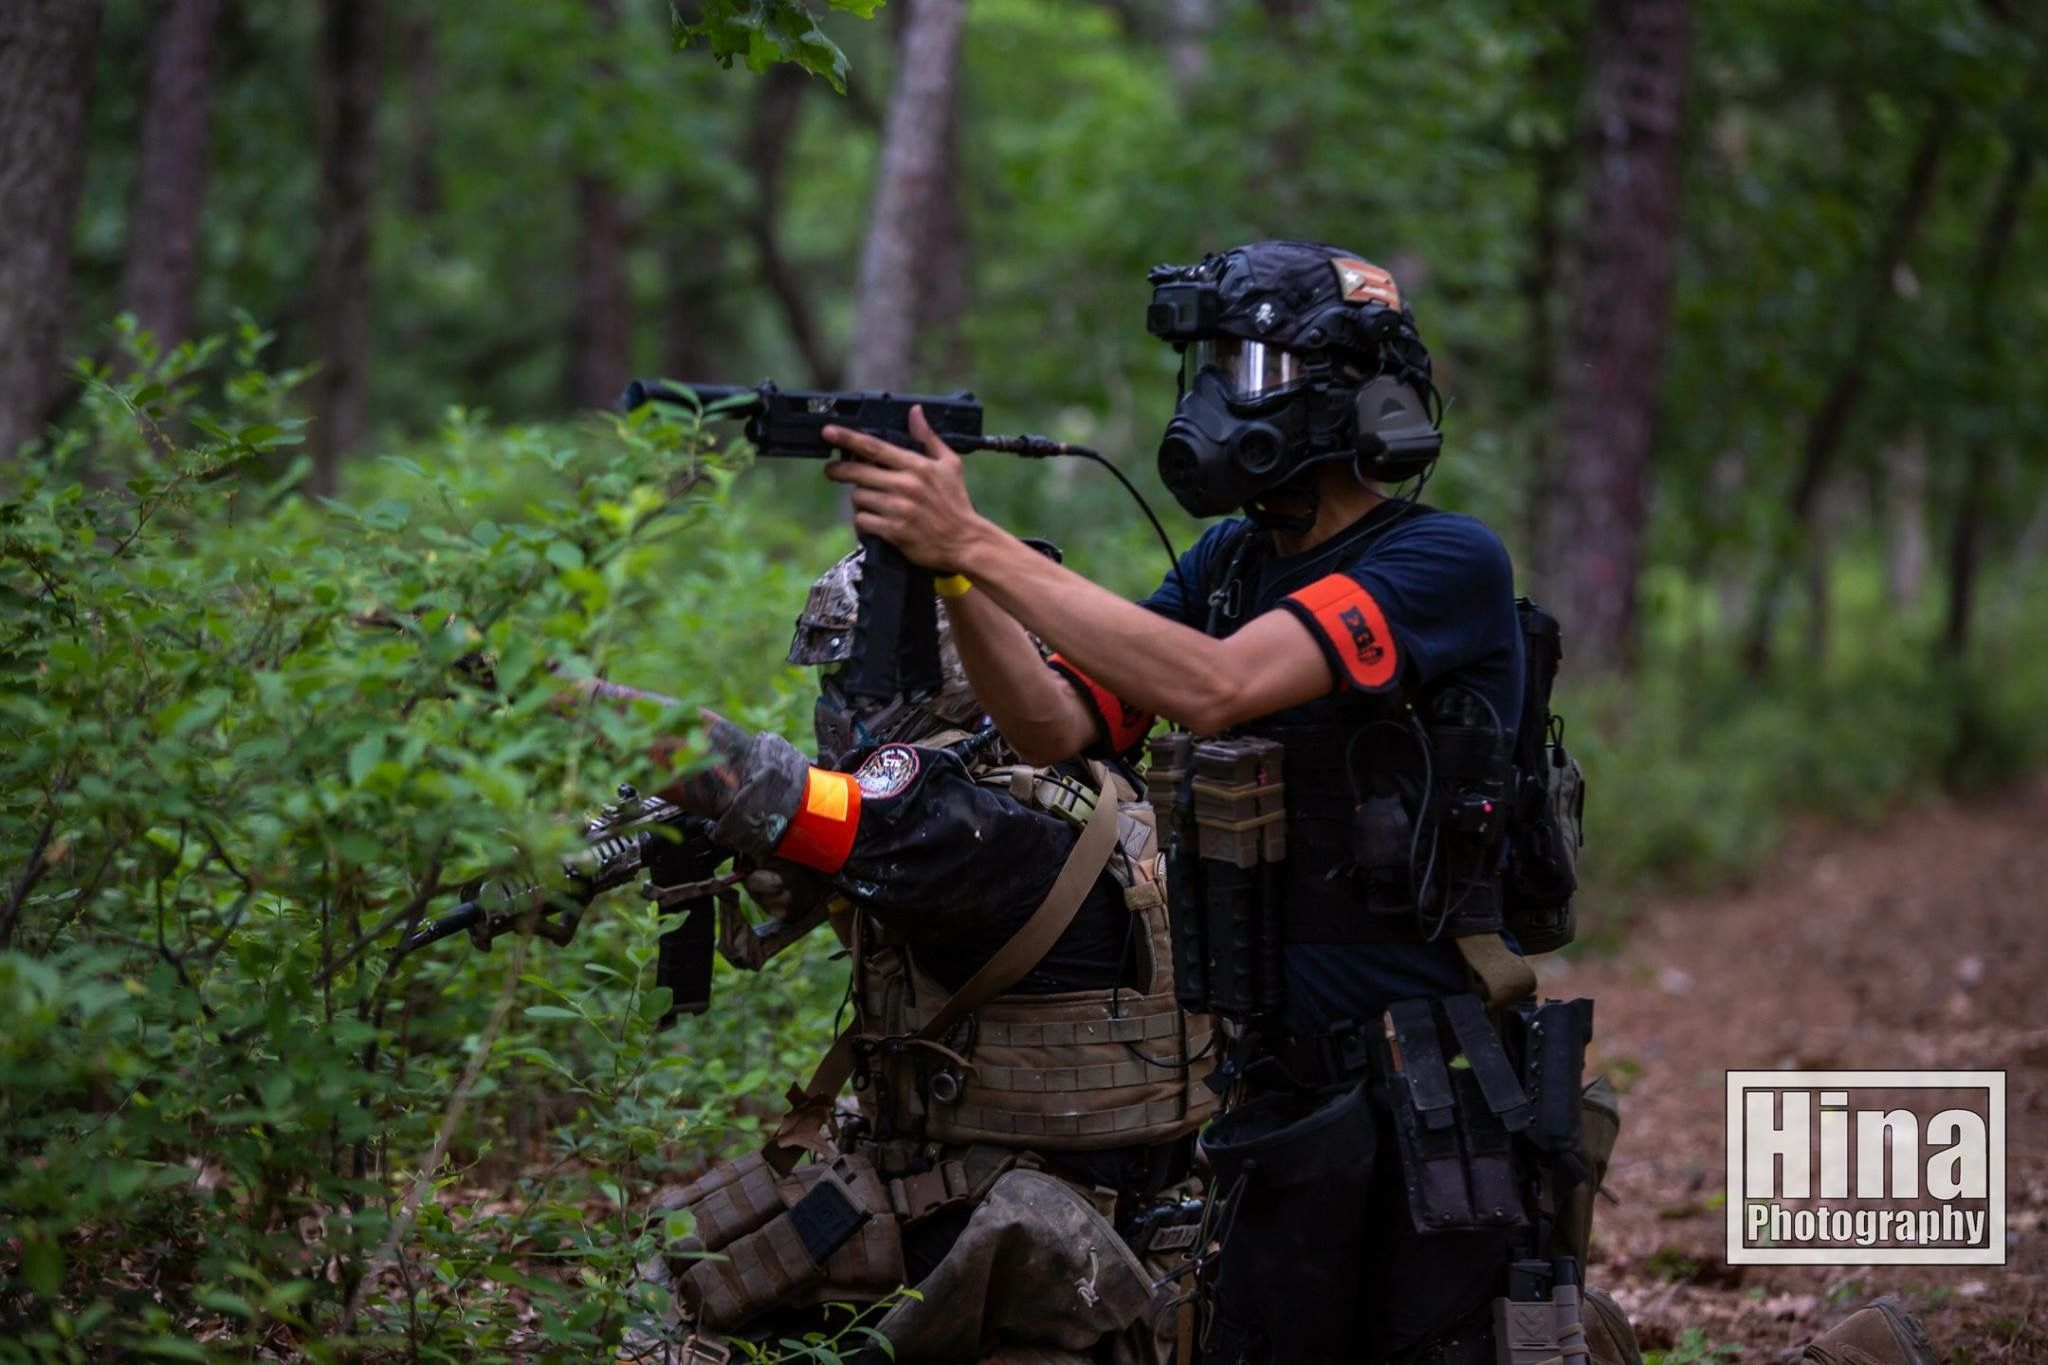 Raptor A 7 Of The Liberty Warloards Picasso Of The Savage Natives Cell Team Six Prisoners Of War Prisoners Of War Prison Paintball